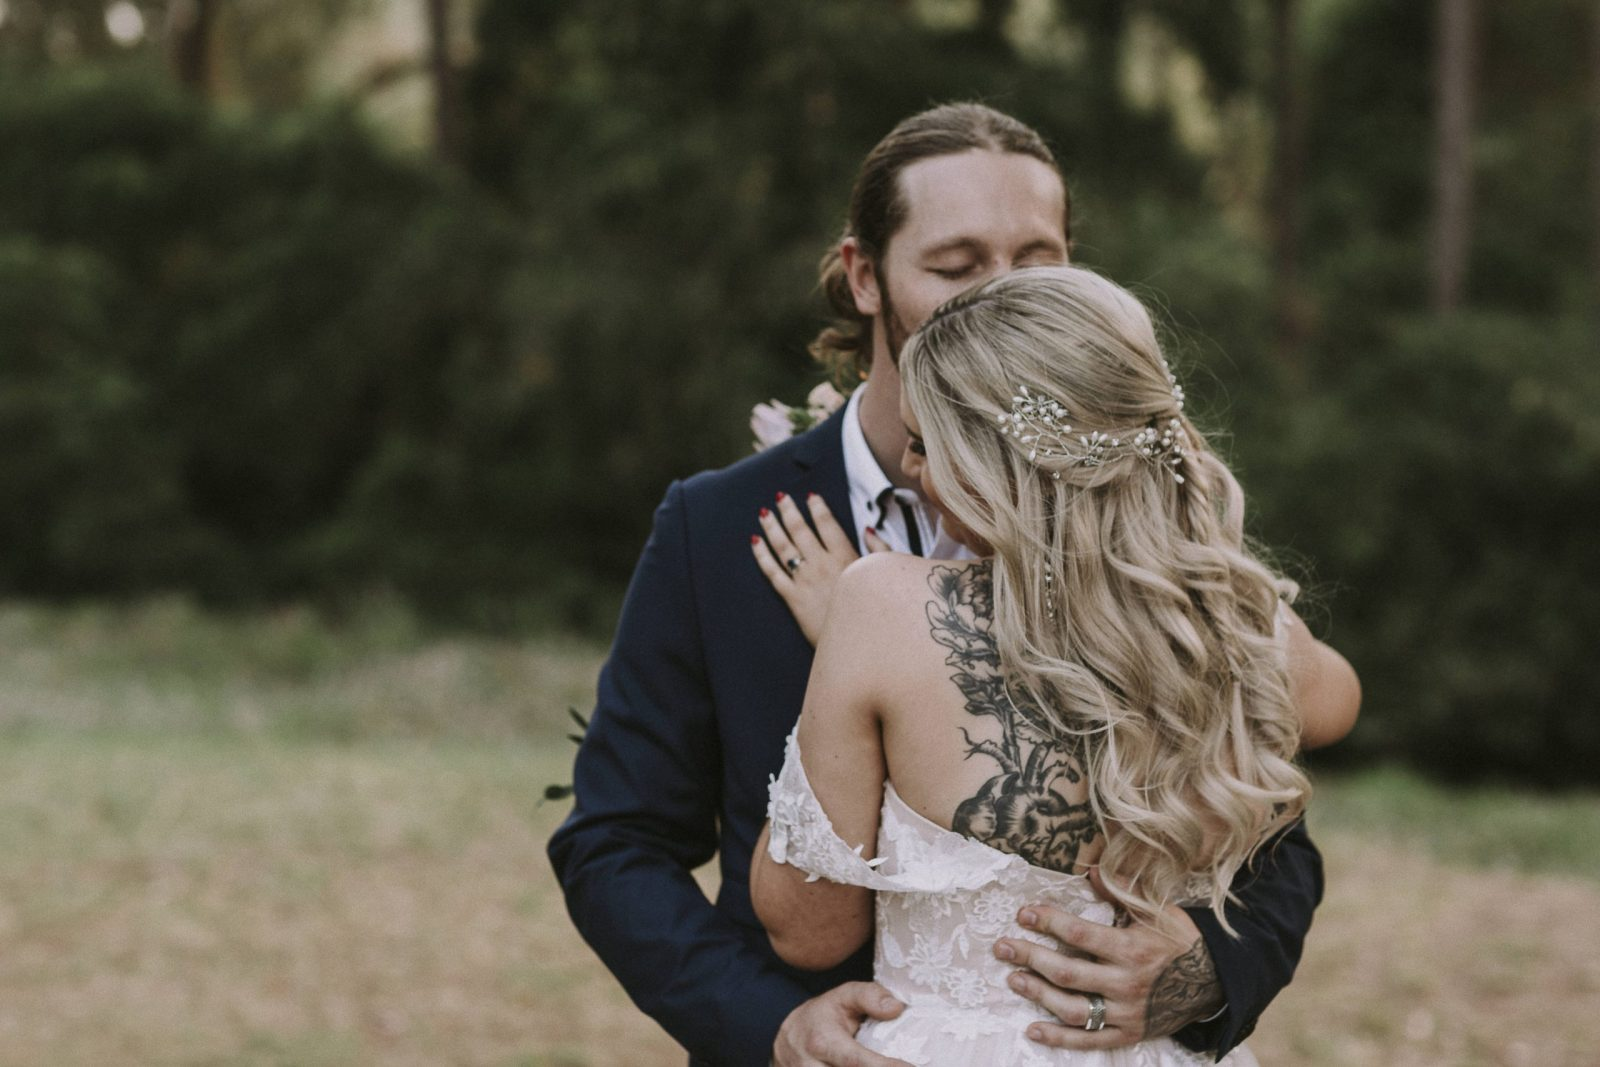 https://scenicrimbride.com.au/wp-content/uploads/2019/12/Scenic-Rim-BrideOReillys-Canungra-Valley-Vineyards-Wedding-Photography-489-scaled.jpg